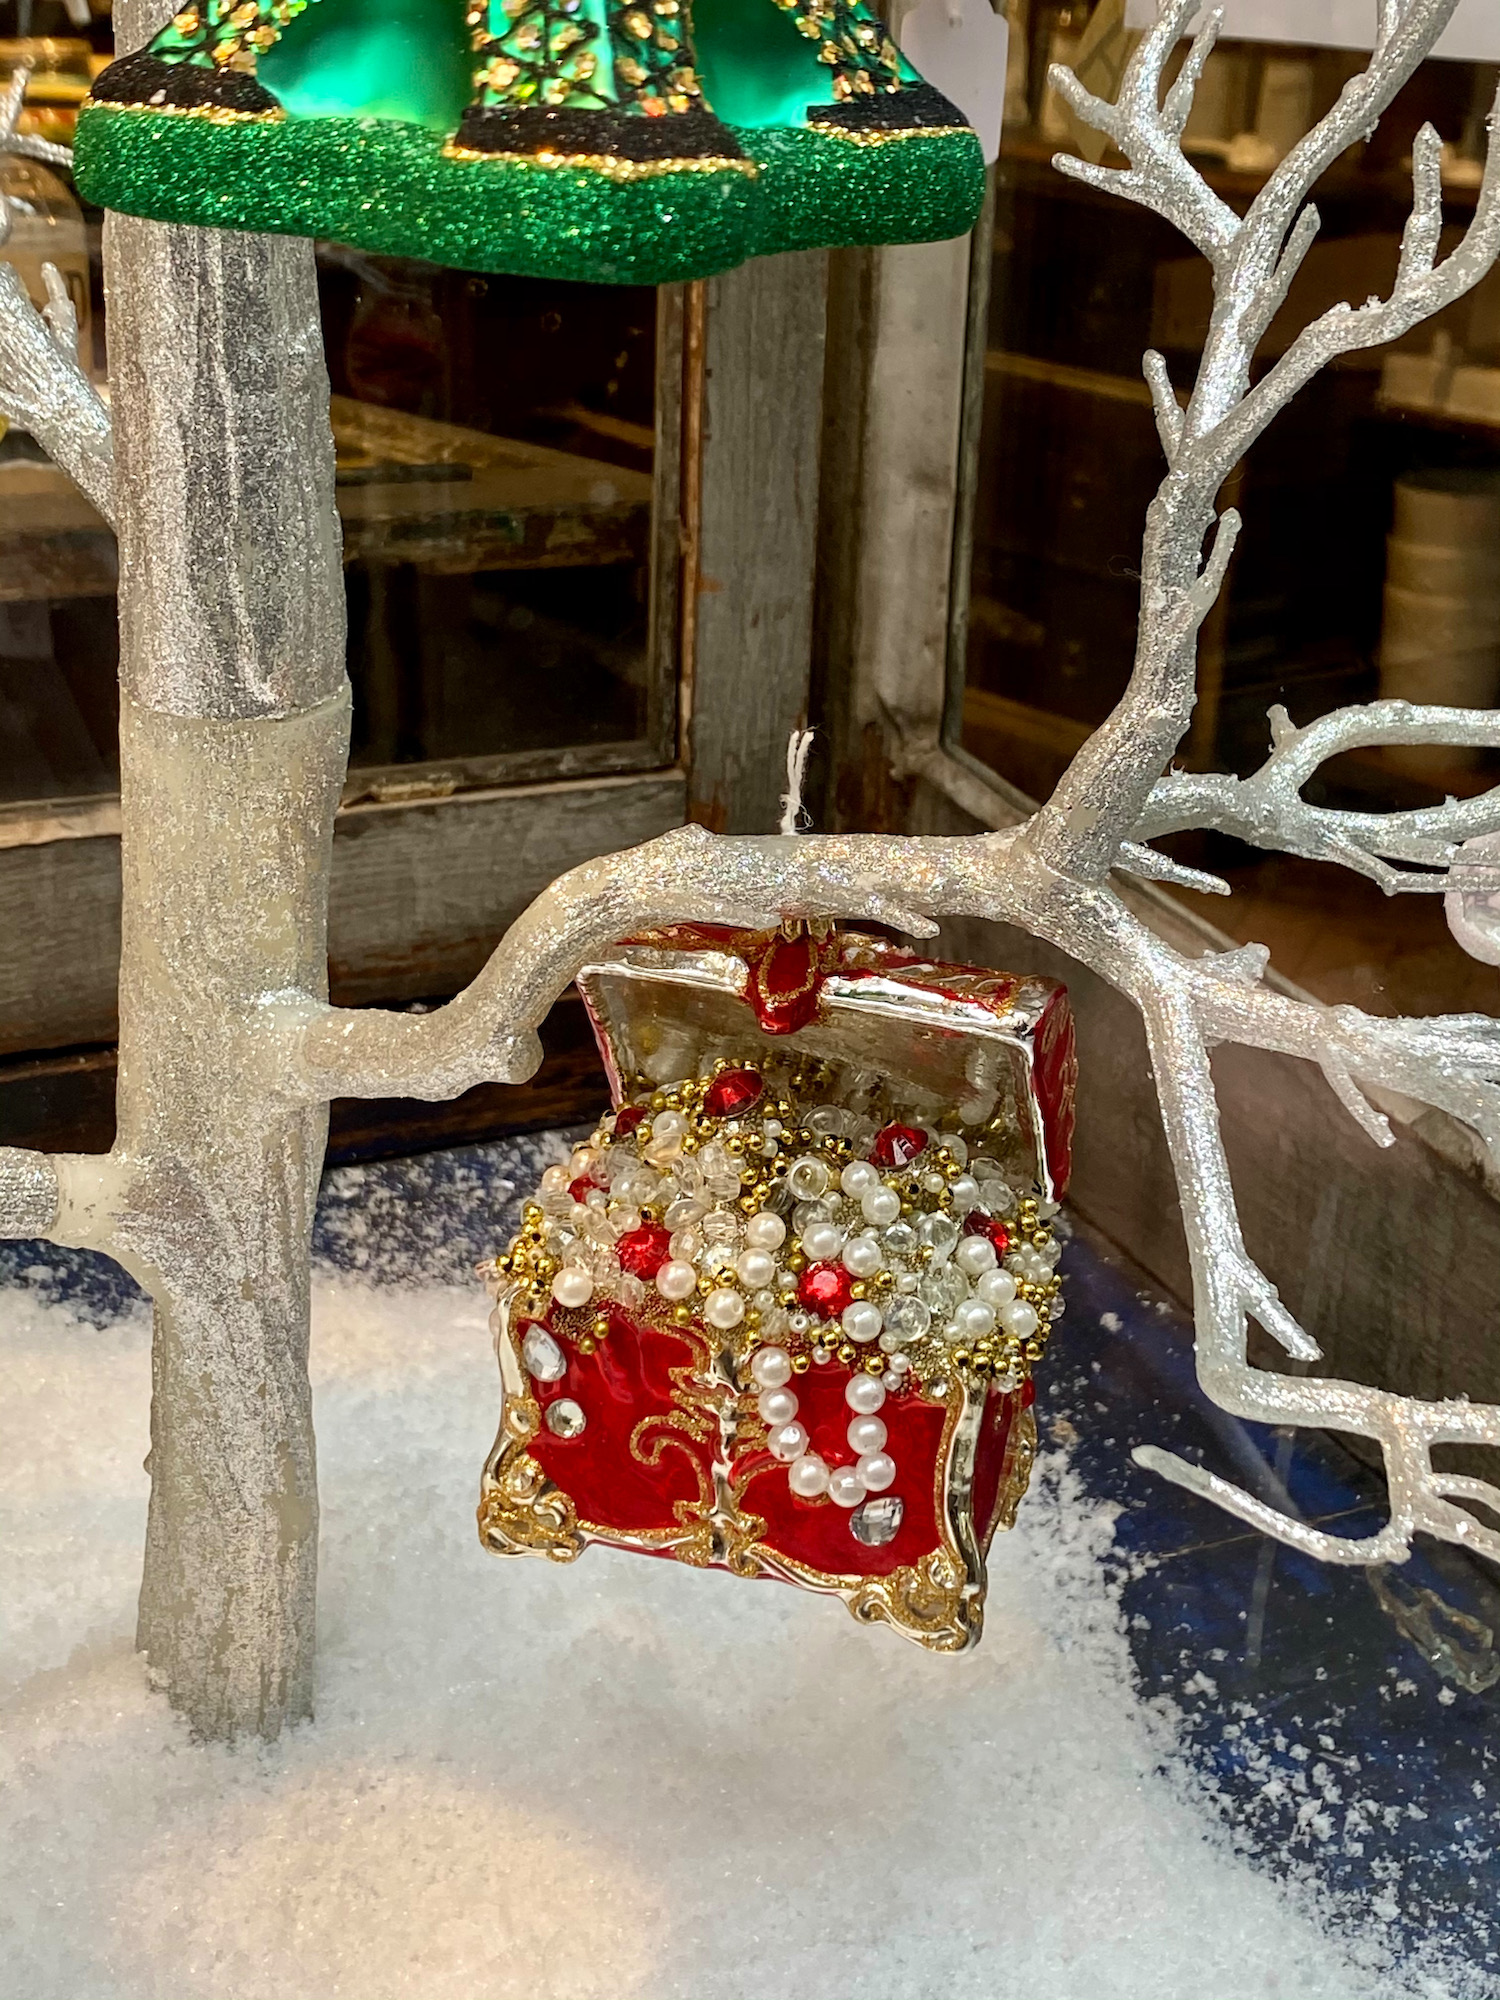 treasure chest ornament